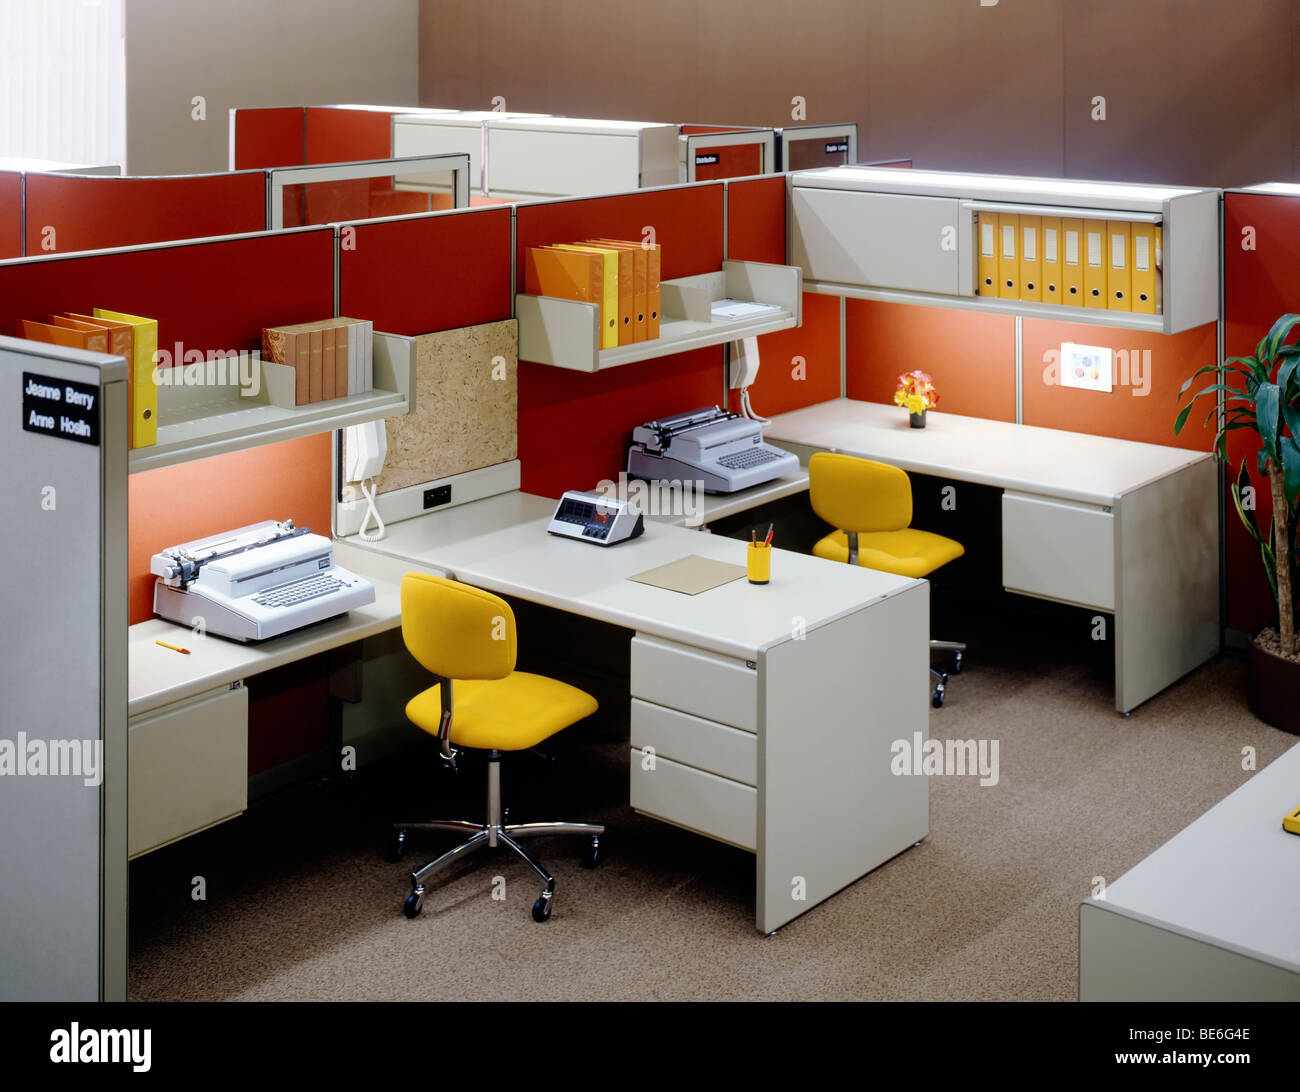 1980s Open Space Office Stock Photo Royalty Free Image